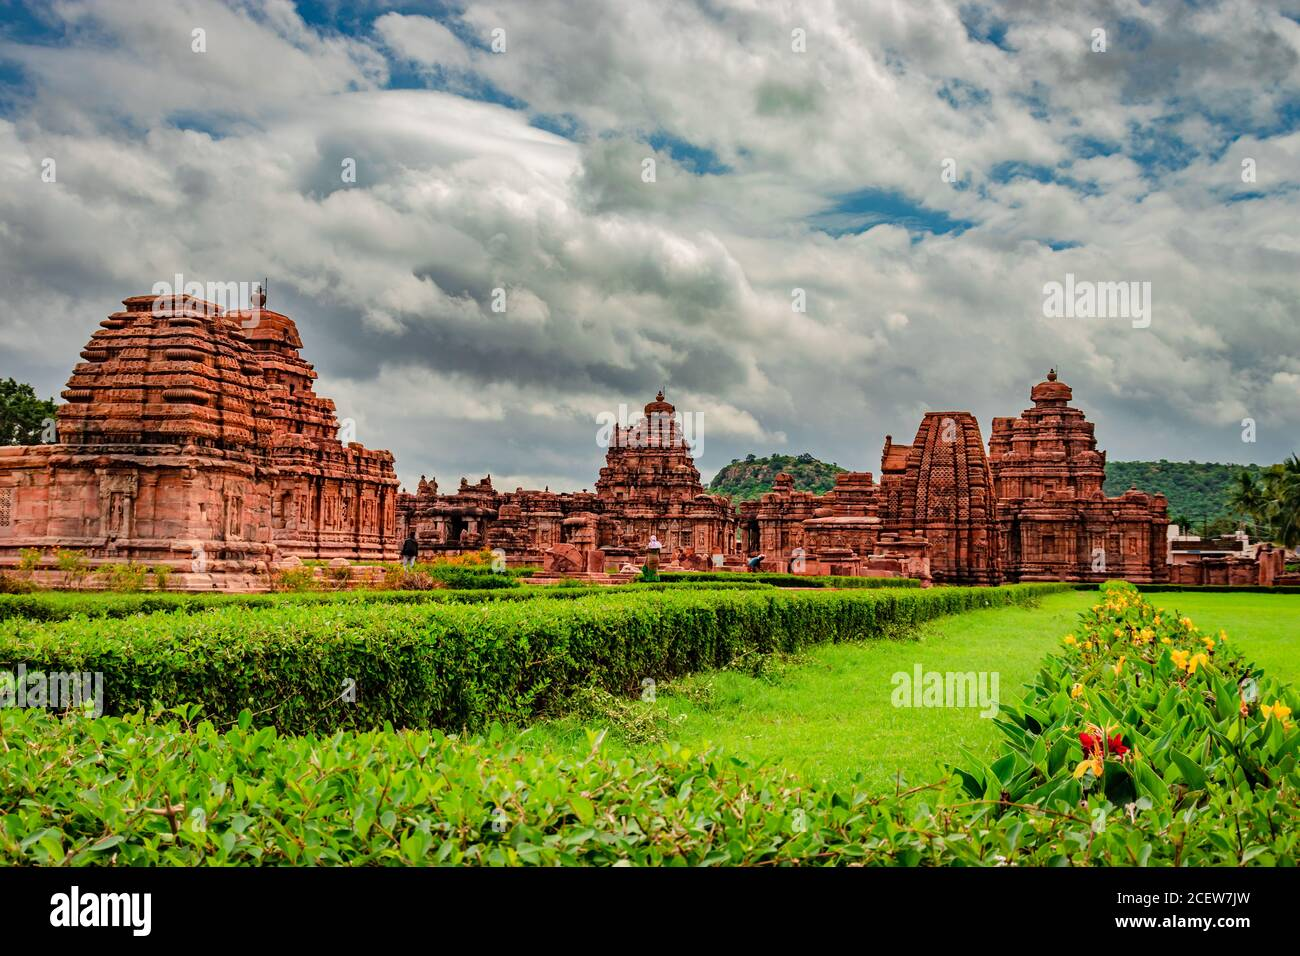 pattadakal temple complex group of monuments breathtaking stone art with dramatic sky karnataka india. It's one of the UNESCO World Heritage Sites and Stock Photo